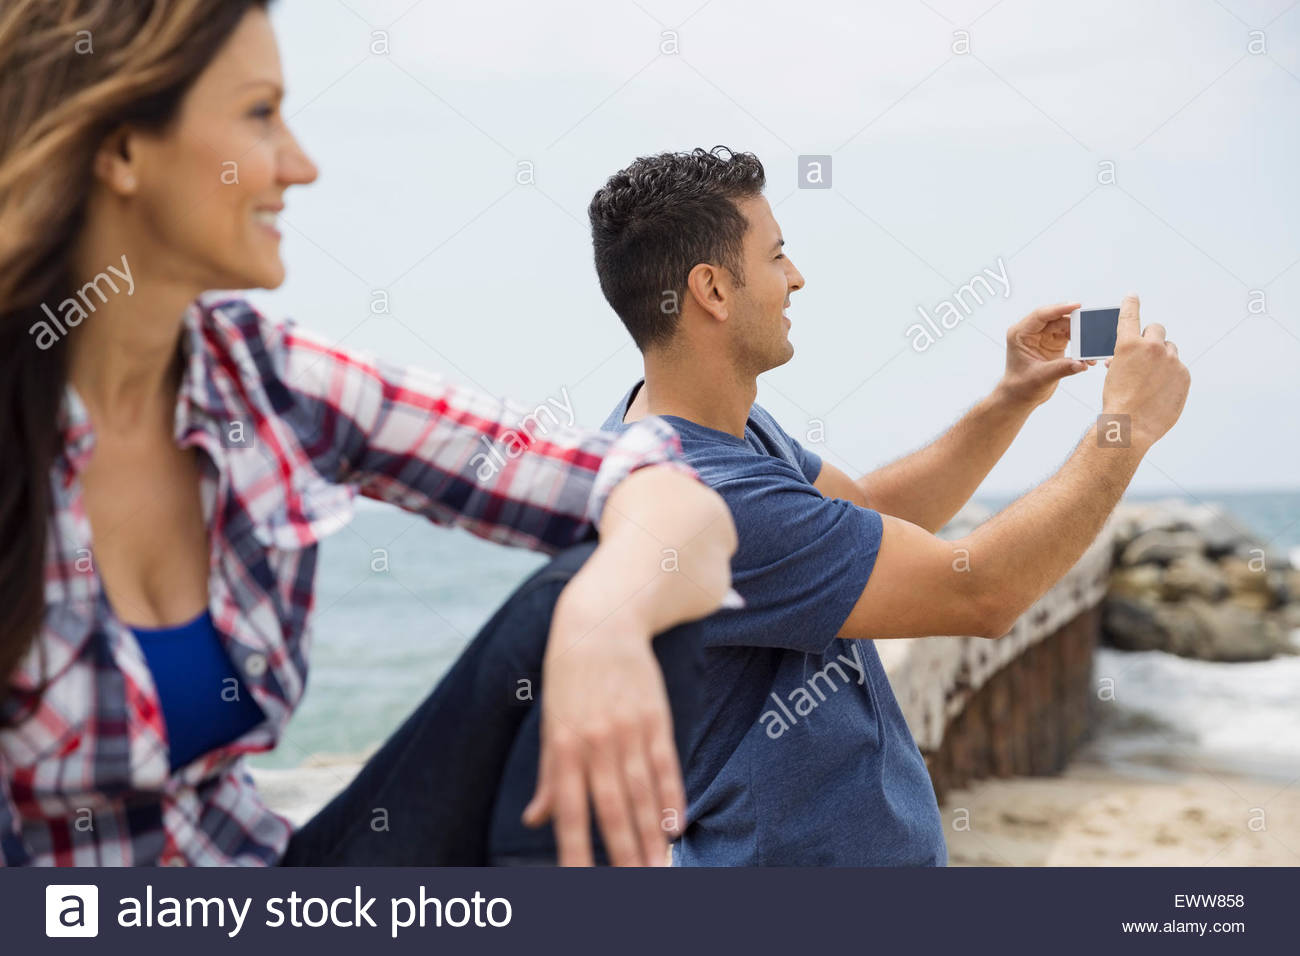 Man photographing with camera phone at beach Stock Photo